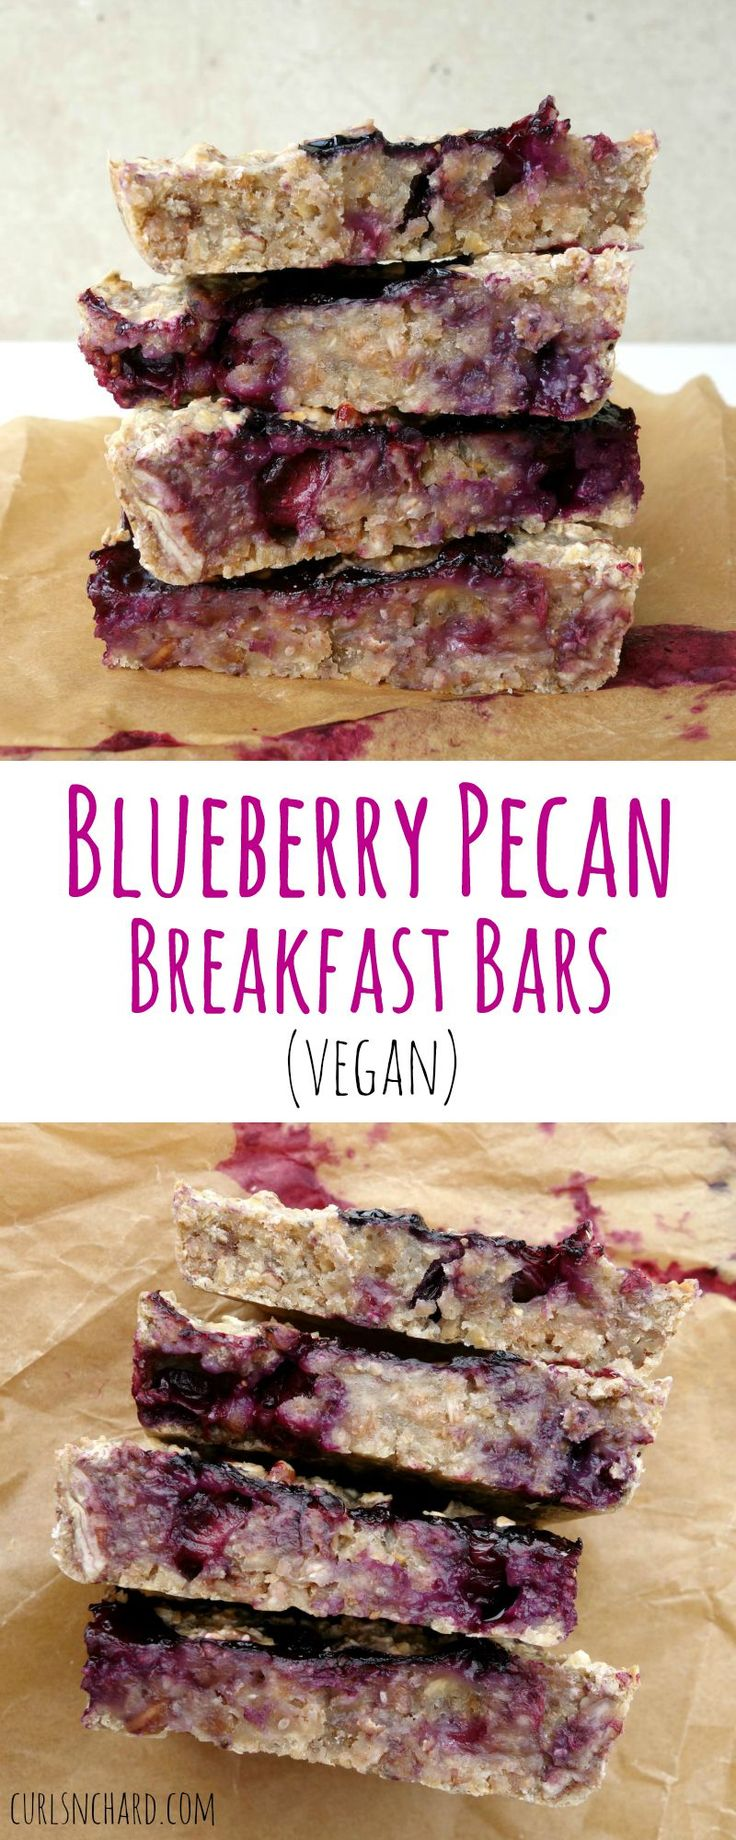 Blueberry Pecan Breakfast Bars made with Spelt Flour (vegan) | curlsnchard.com